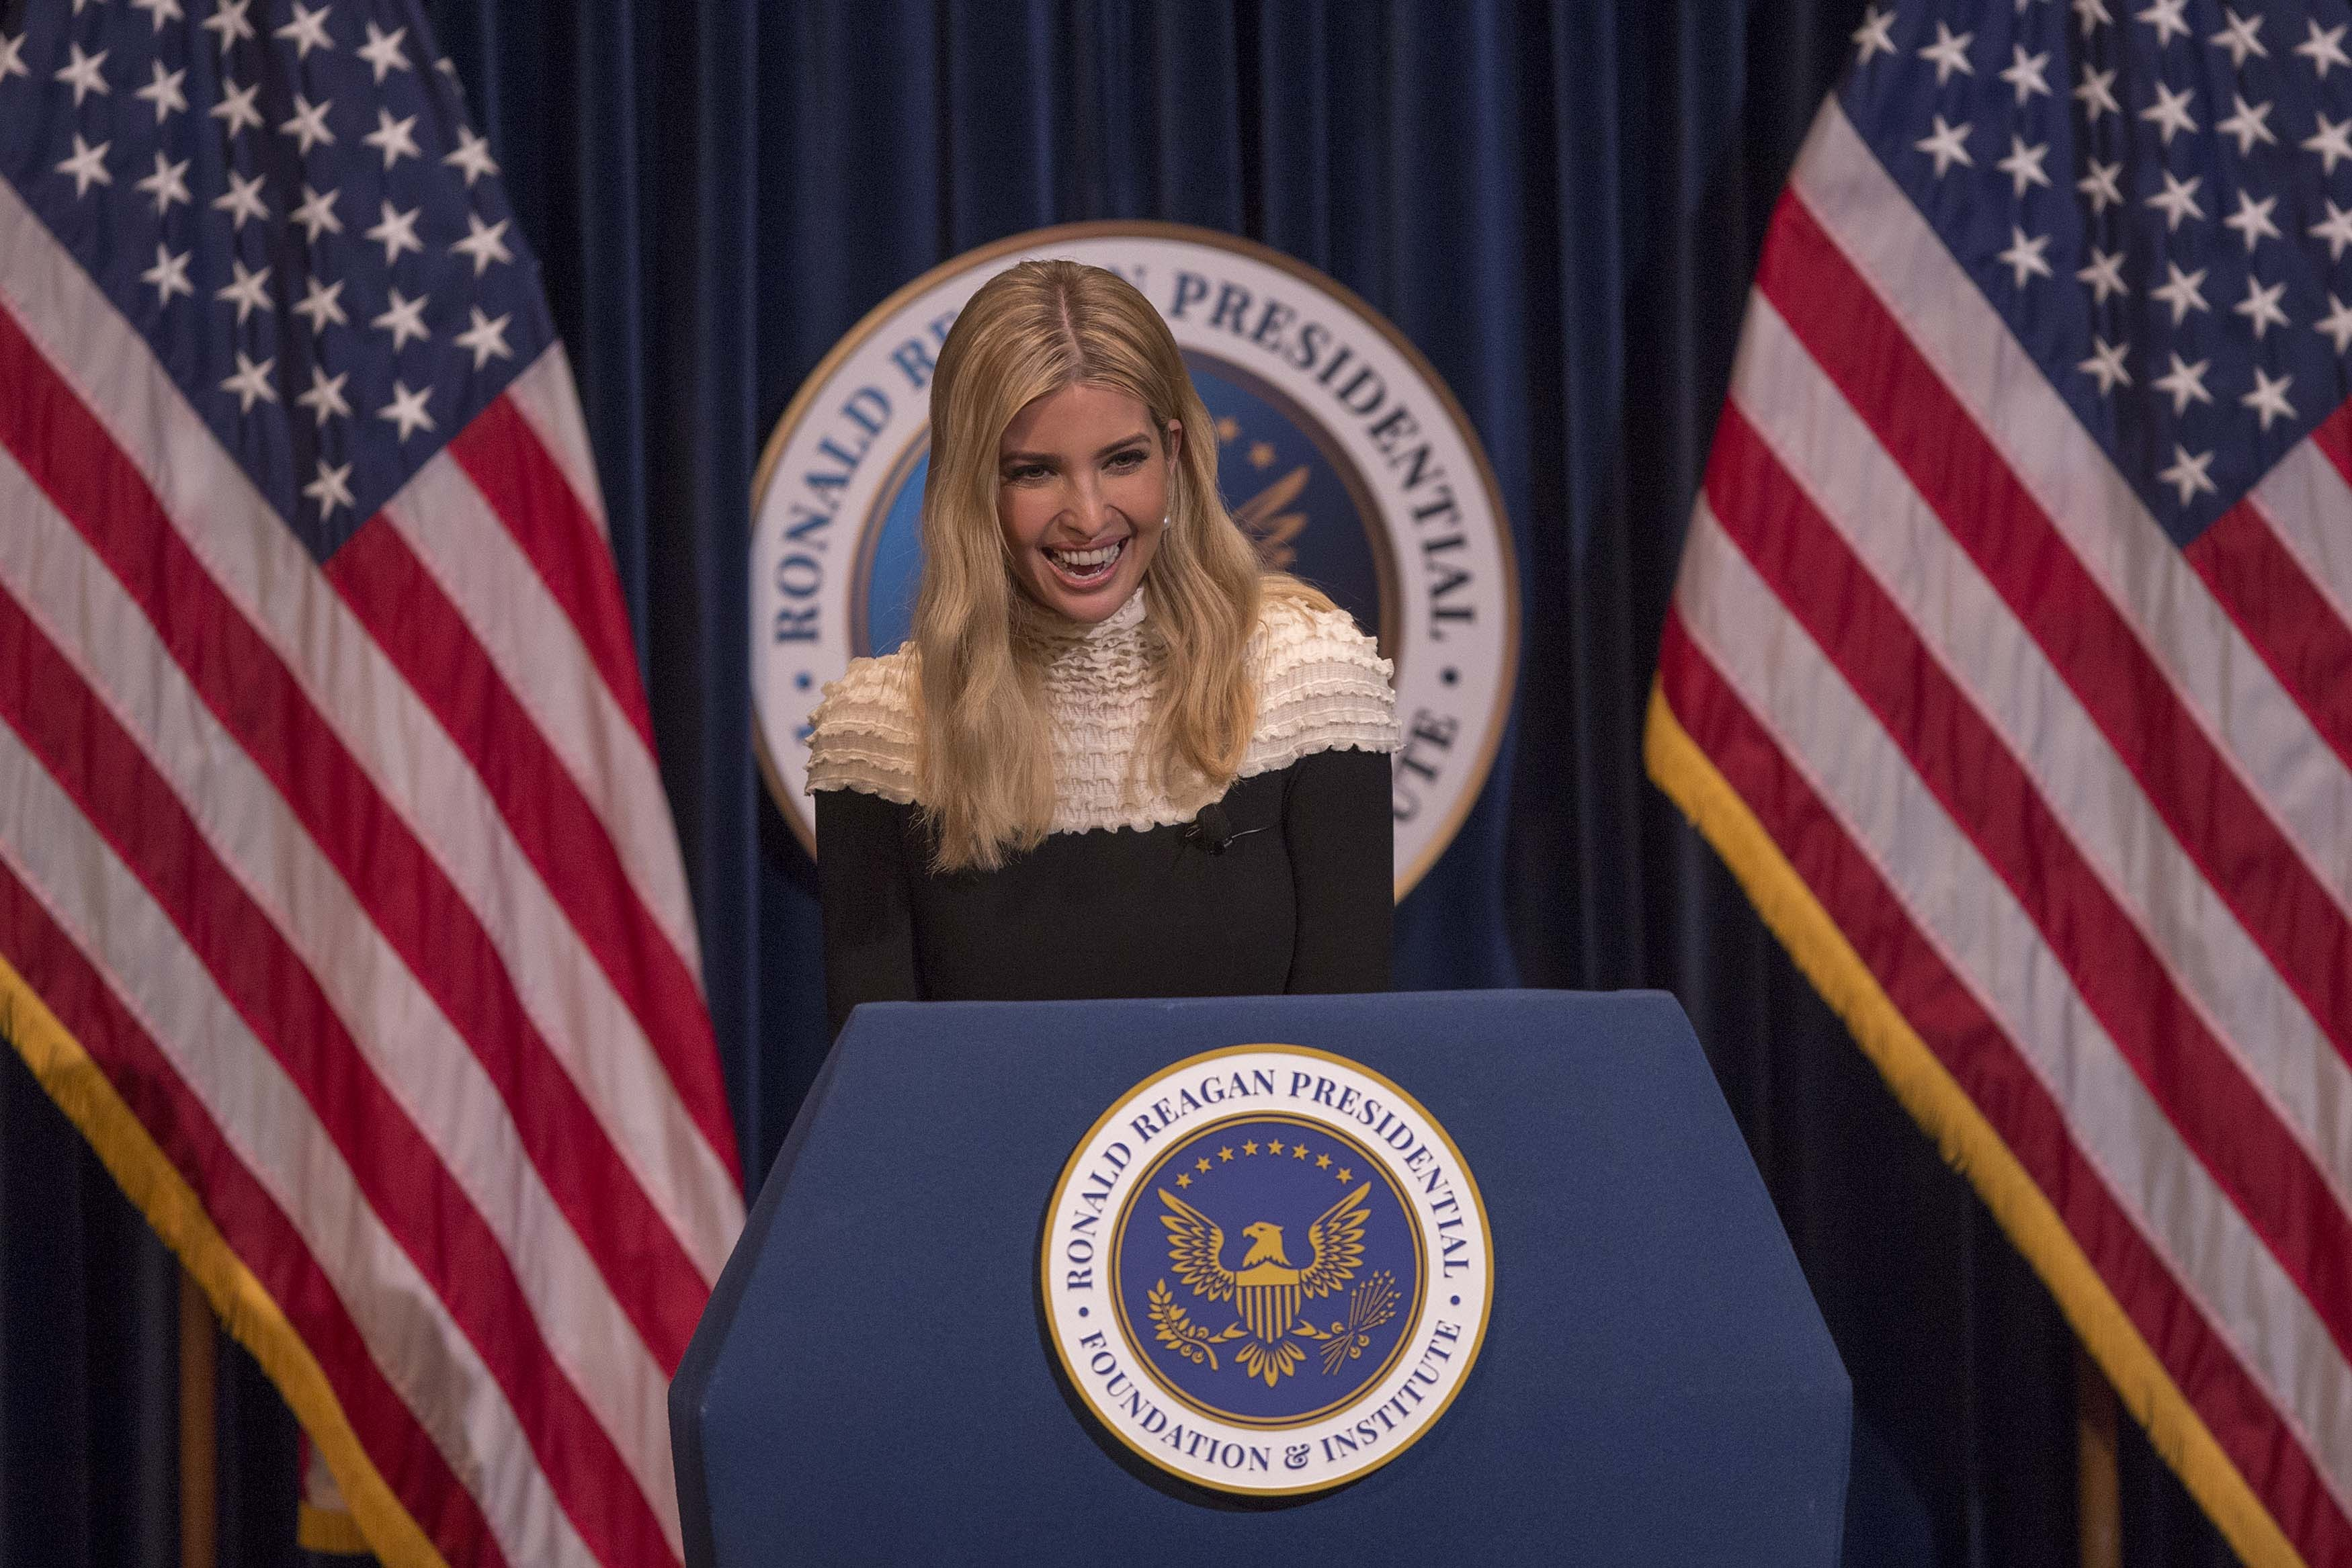 Ivanka Trump appears at the Ronald Reagan Presidential Library to talk about tax cuts and reform on November 5, 2017 in Simi Valley, California.